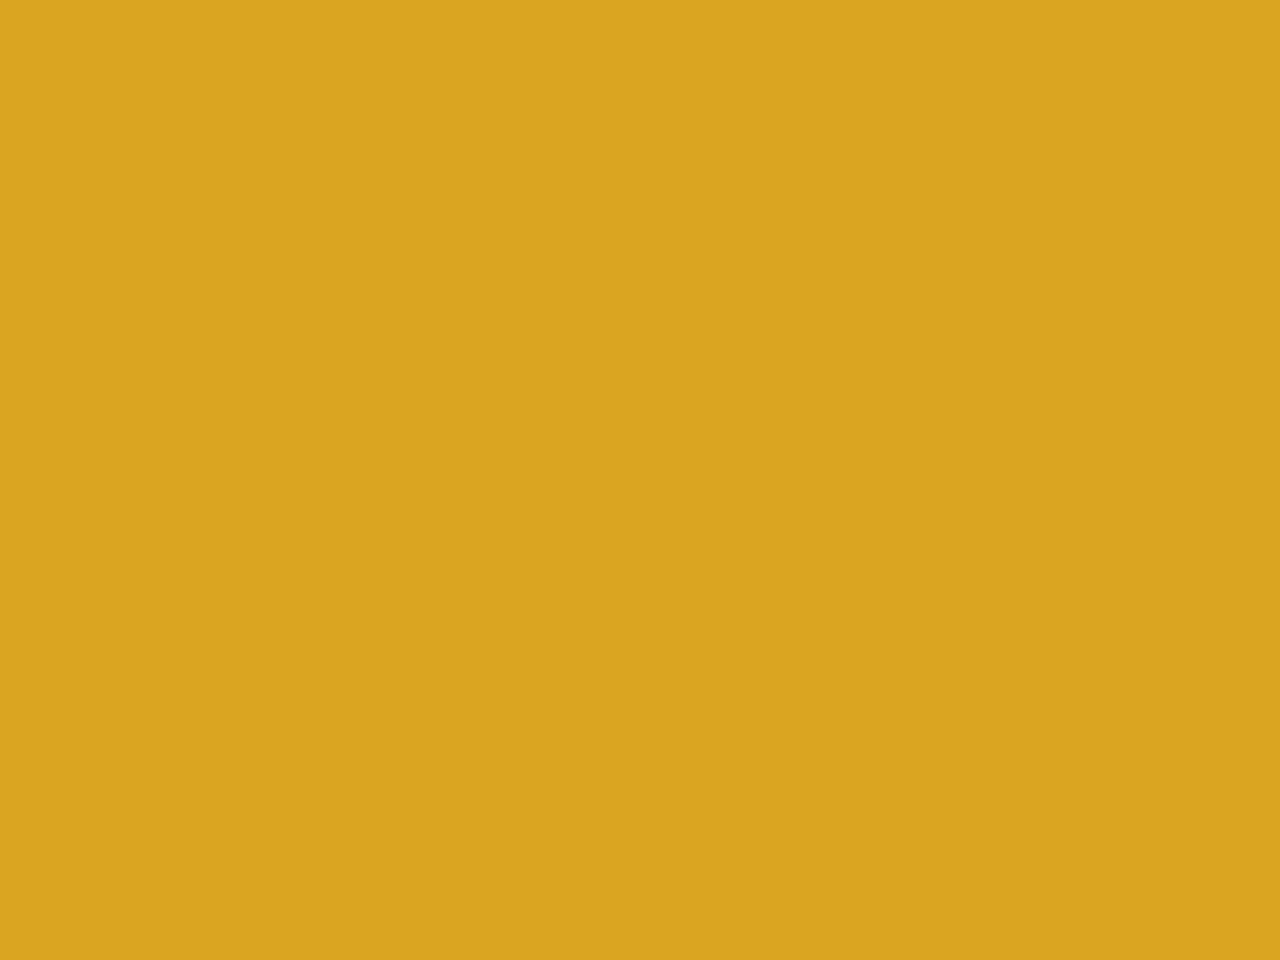 1280x960 Goldenrod Solid Color Background